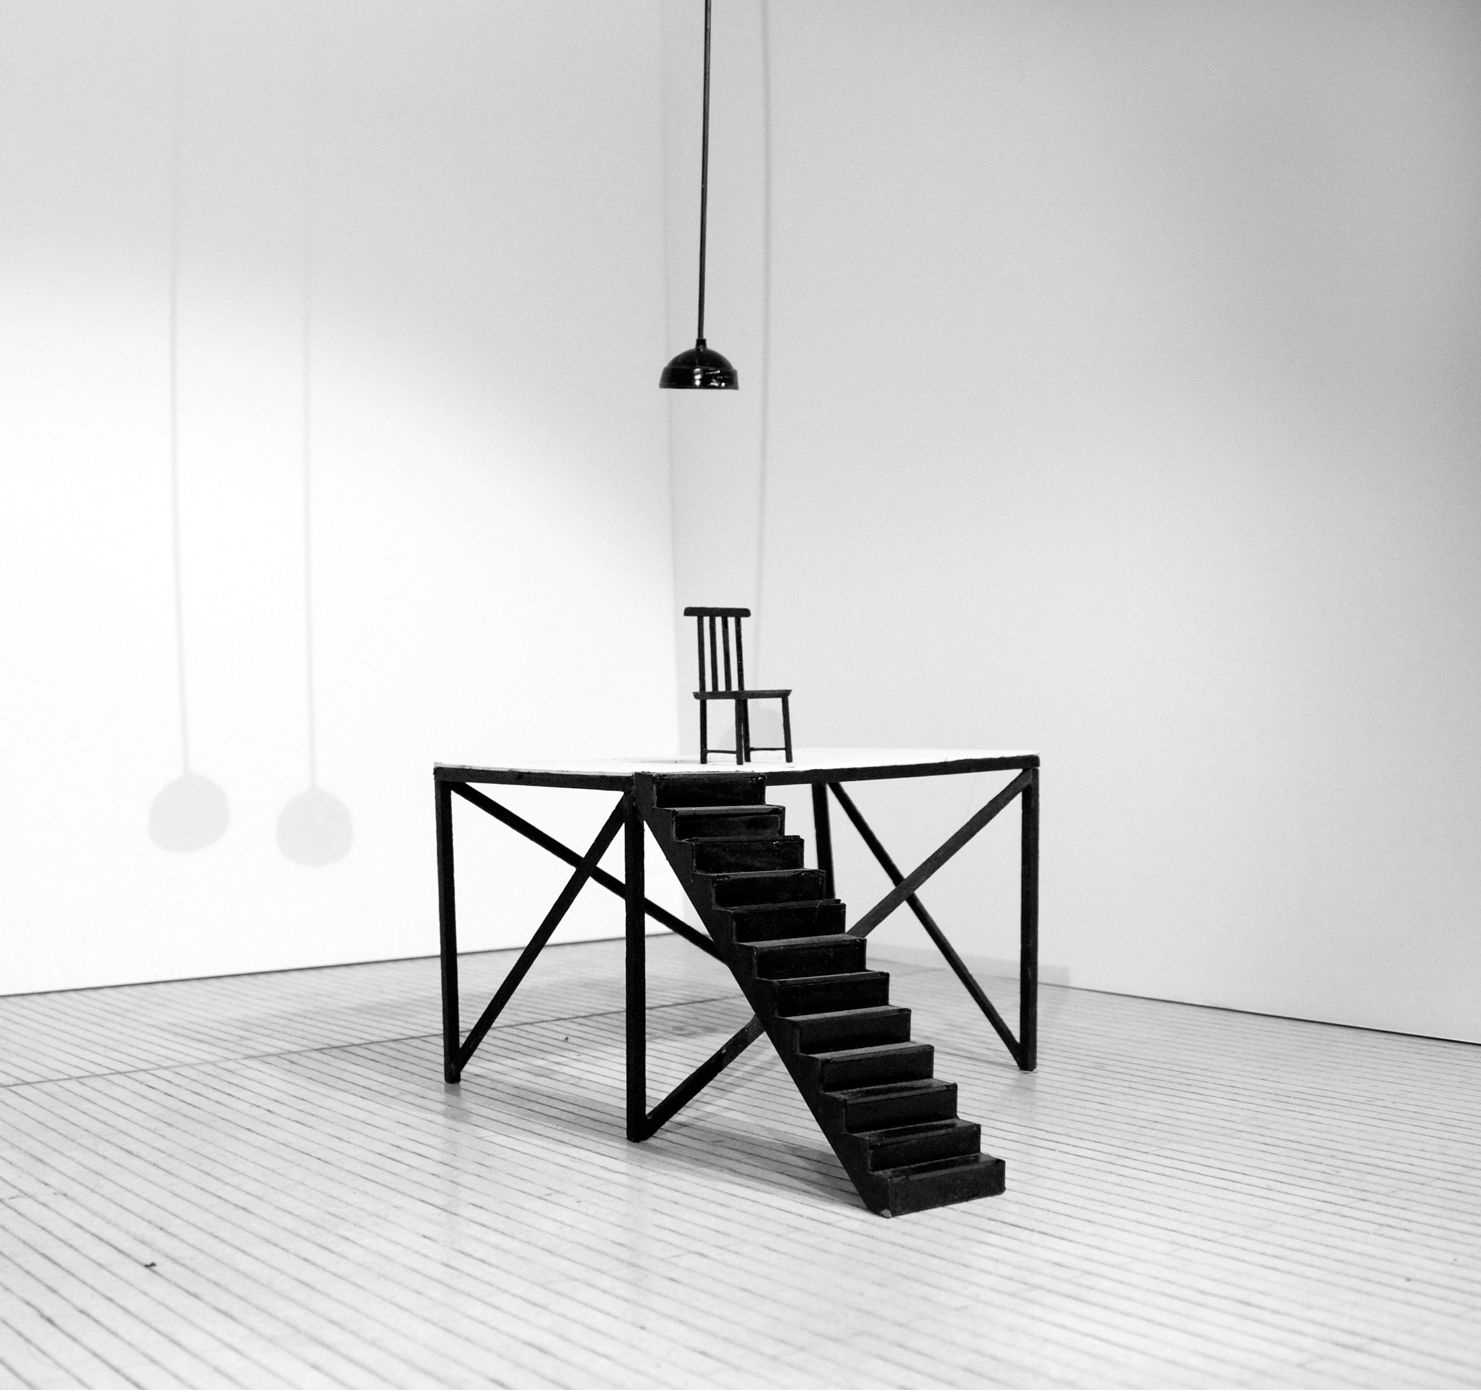 Gallery Series: Platform & Chair